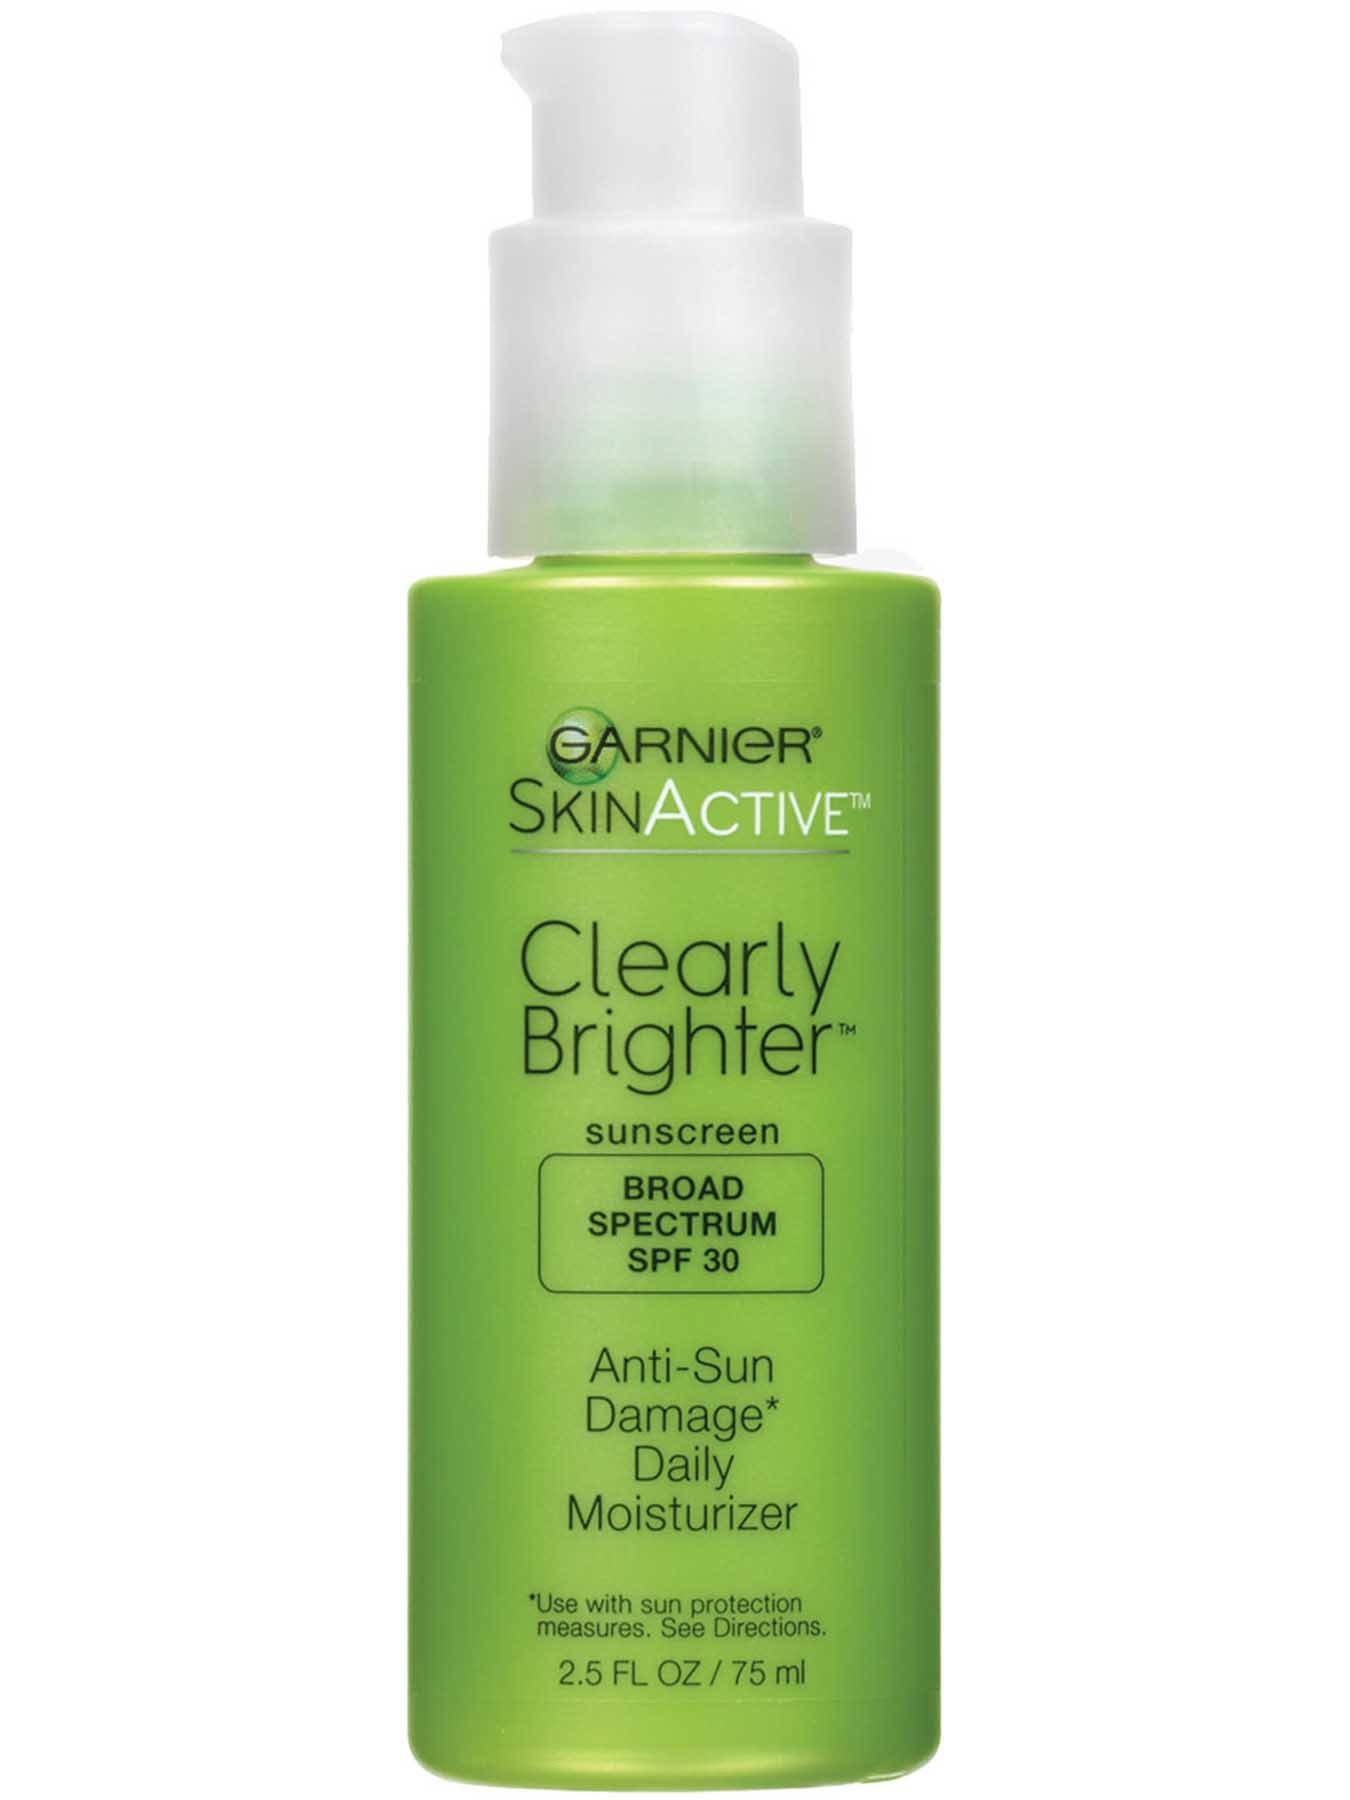 Garnier SkinActive Clearly Brighter Anti-Sun Damage* Daily Moisturizer SPF 30